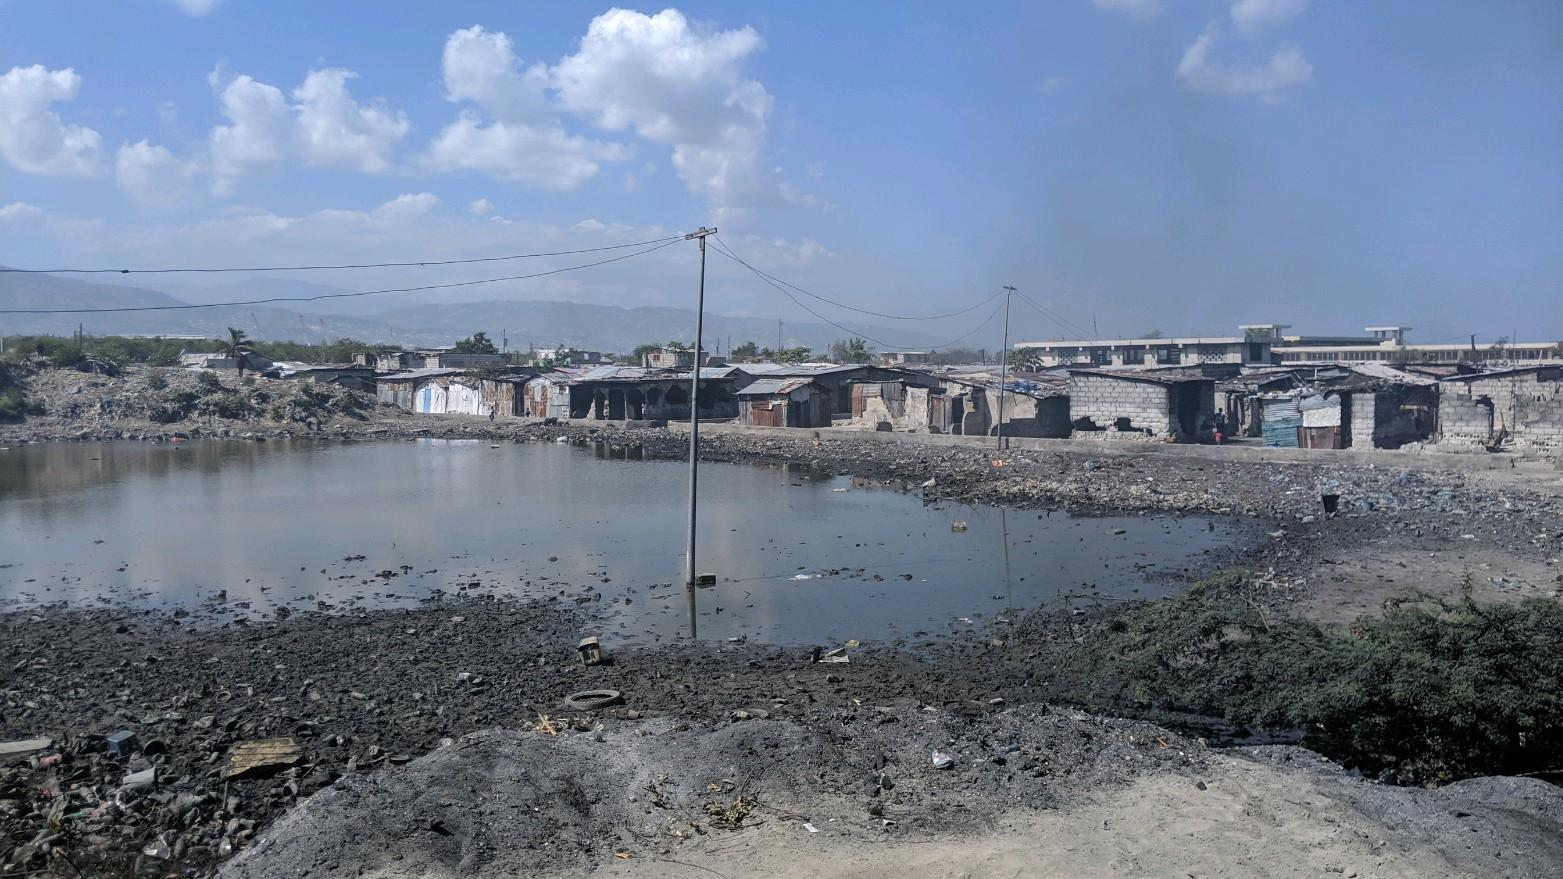 view of slum.jpg